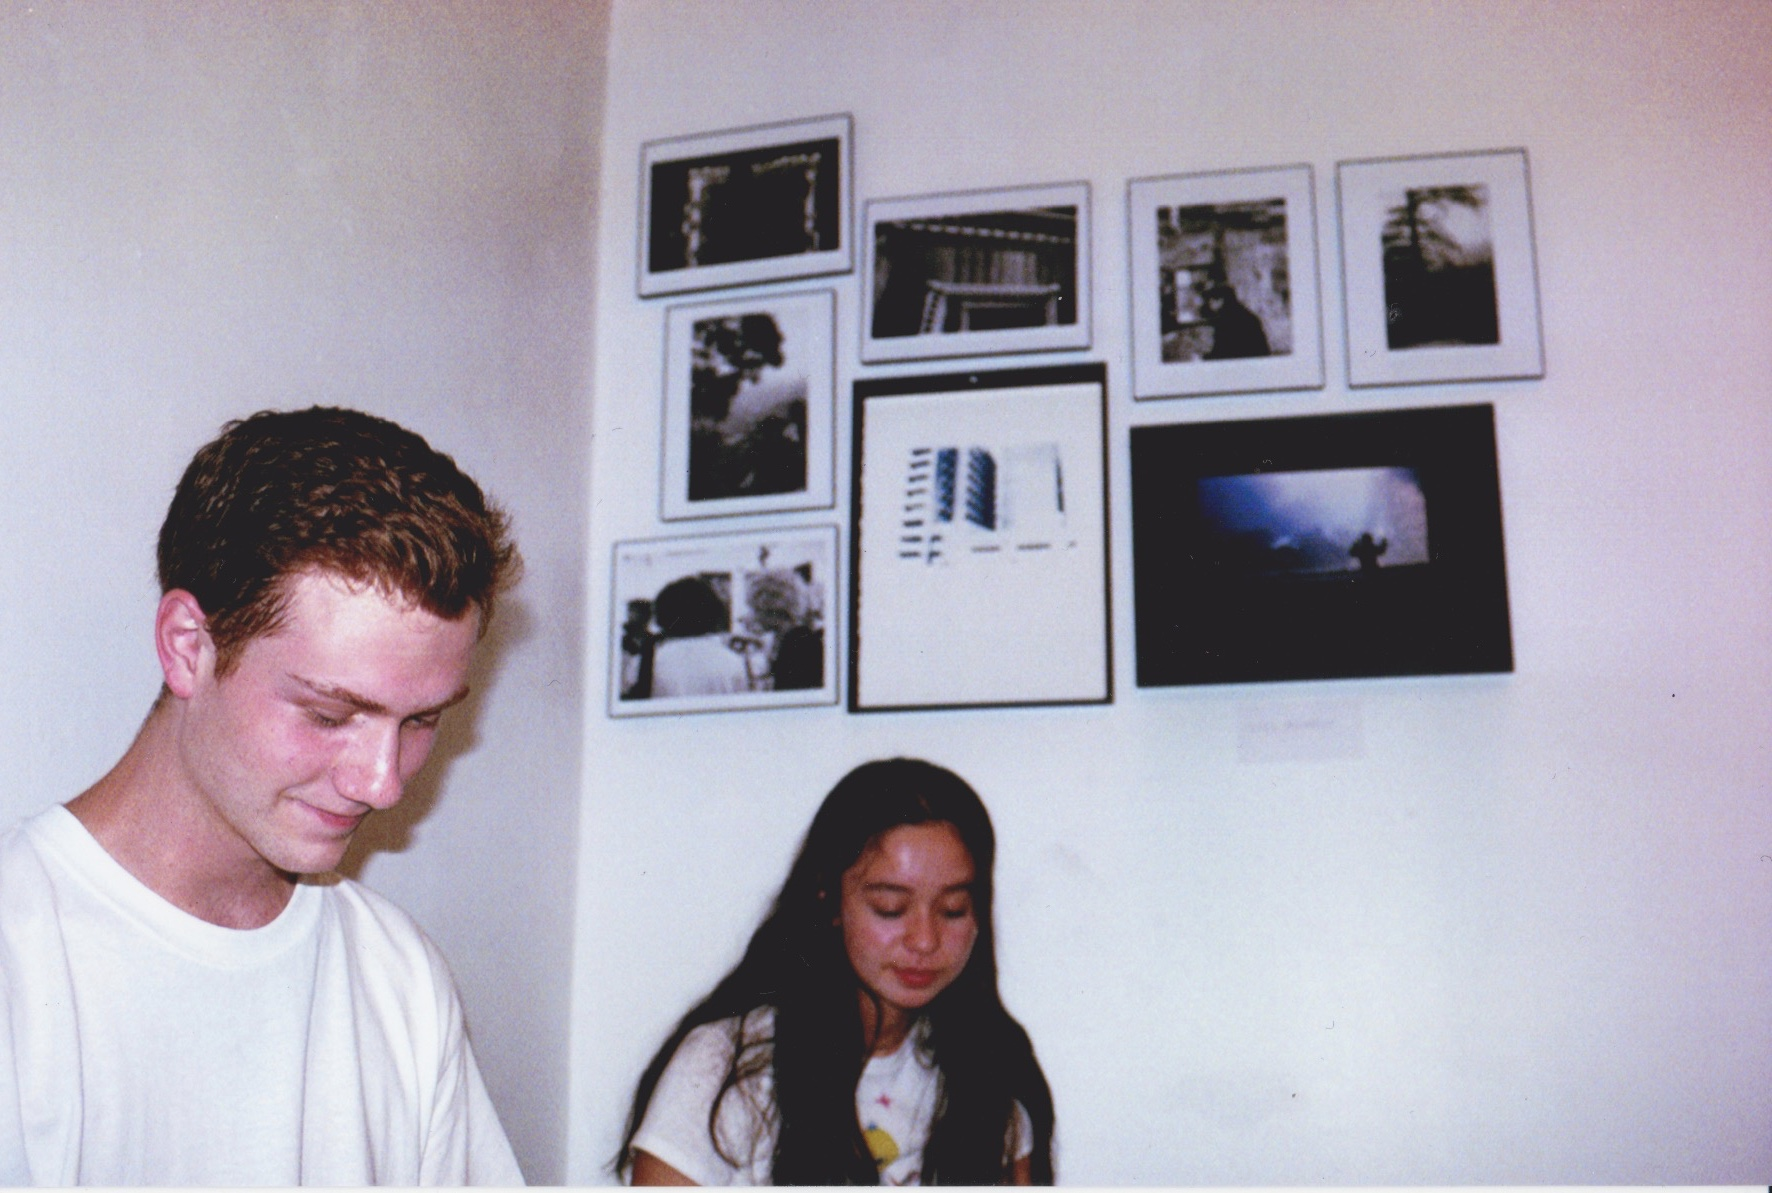 Viviana Alvarez (right) with her photographs at Color Theory Club II